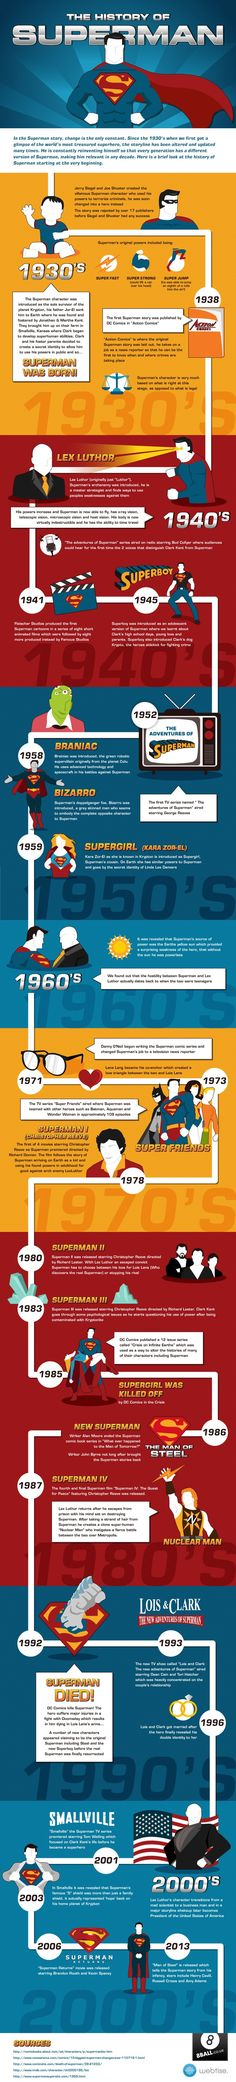 geek, super hero, histori, stuff, nerdi, superman, comic, infograph, superhero